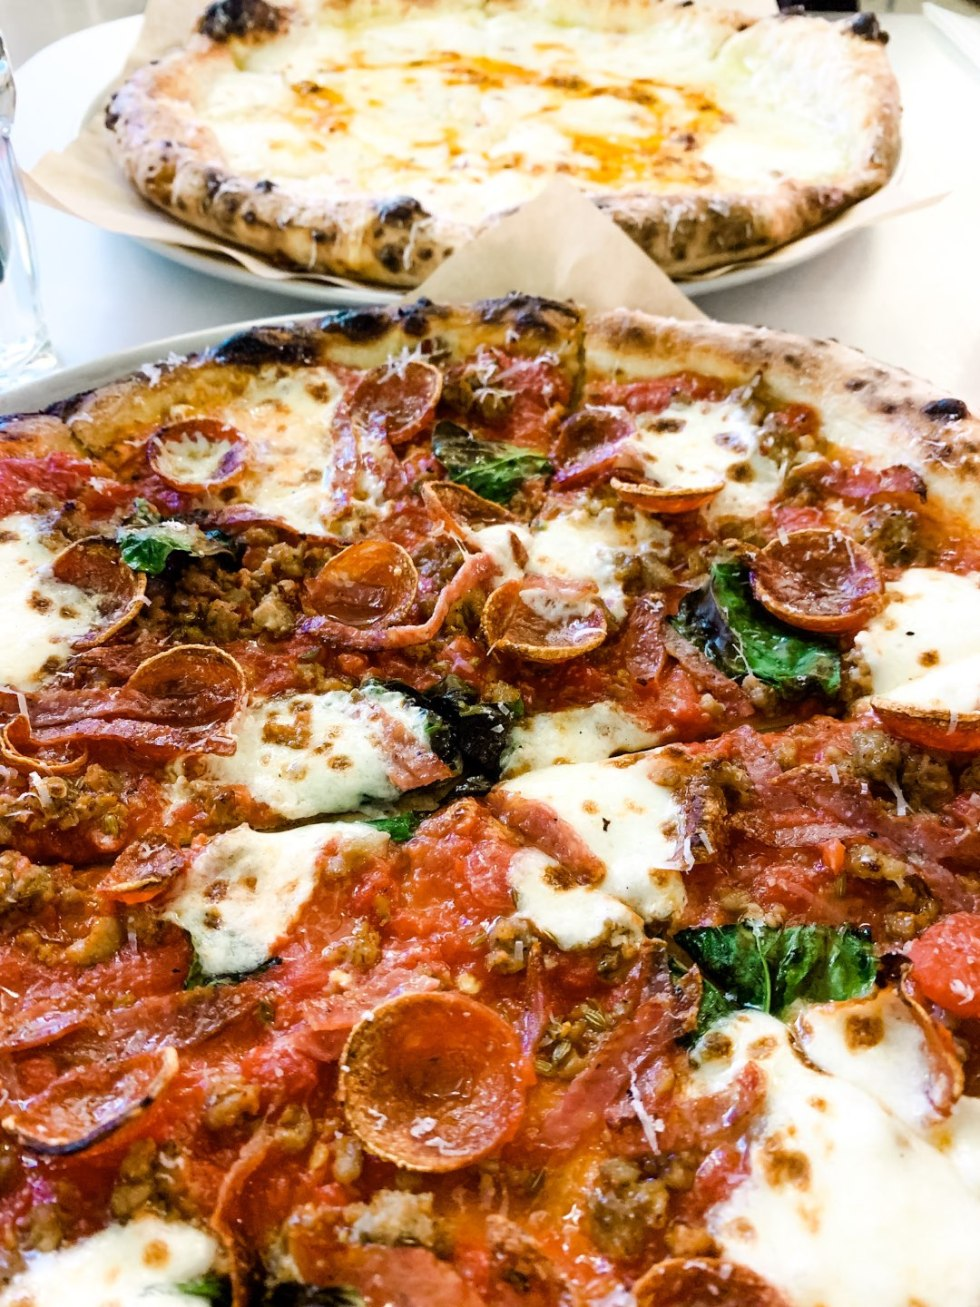 Most Popular Posts of 2020 - I'm Fixin' To - @imfixintoblog |Most Popular Posts by popular NC lifestyle blog, I'm Fixin' To: image of a pizza with pepperoni, sausage, and basil.